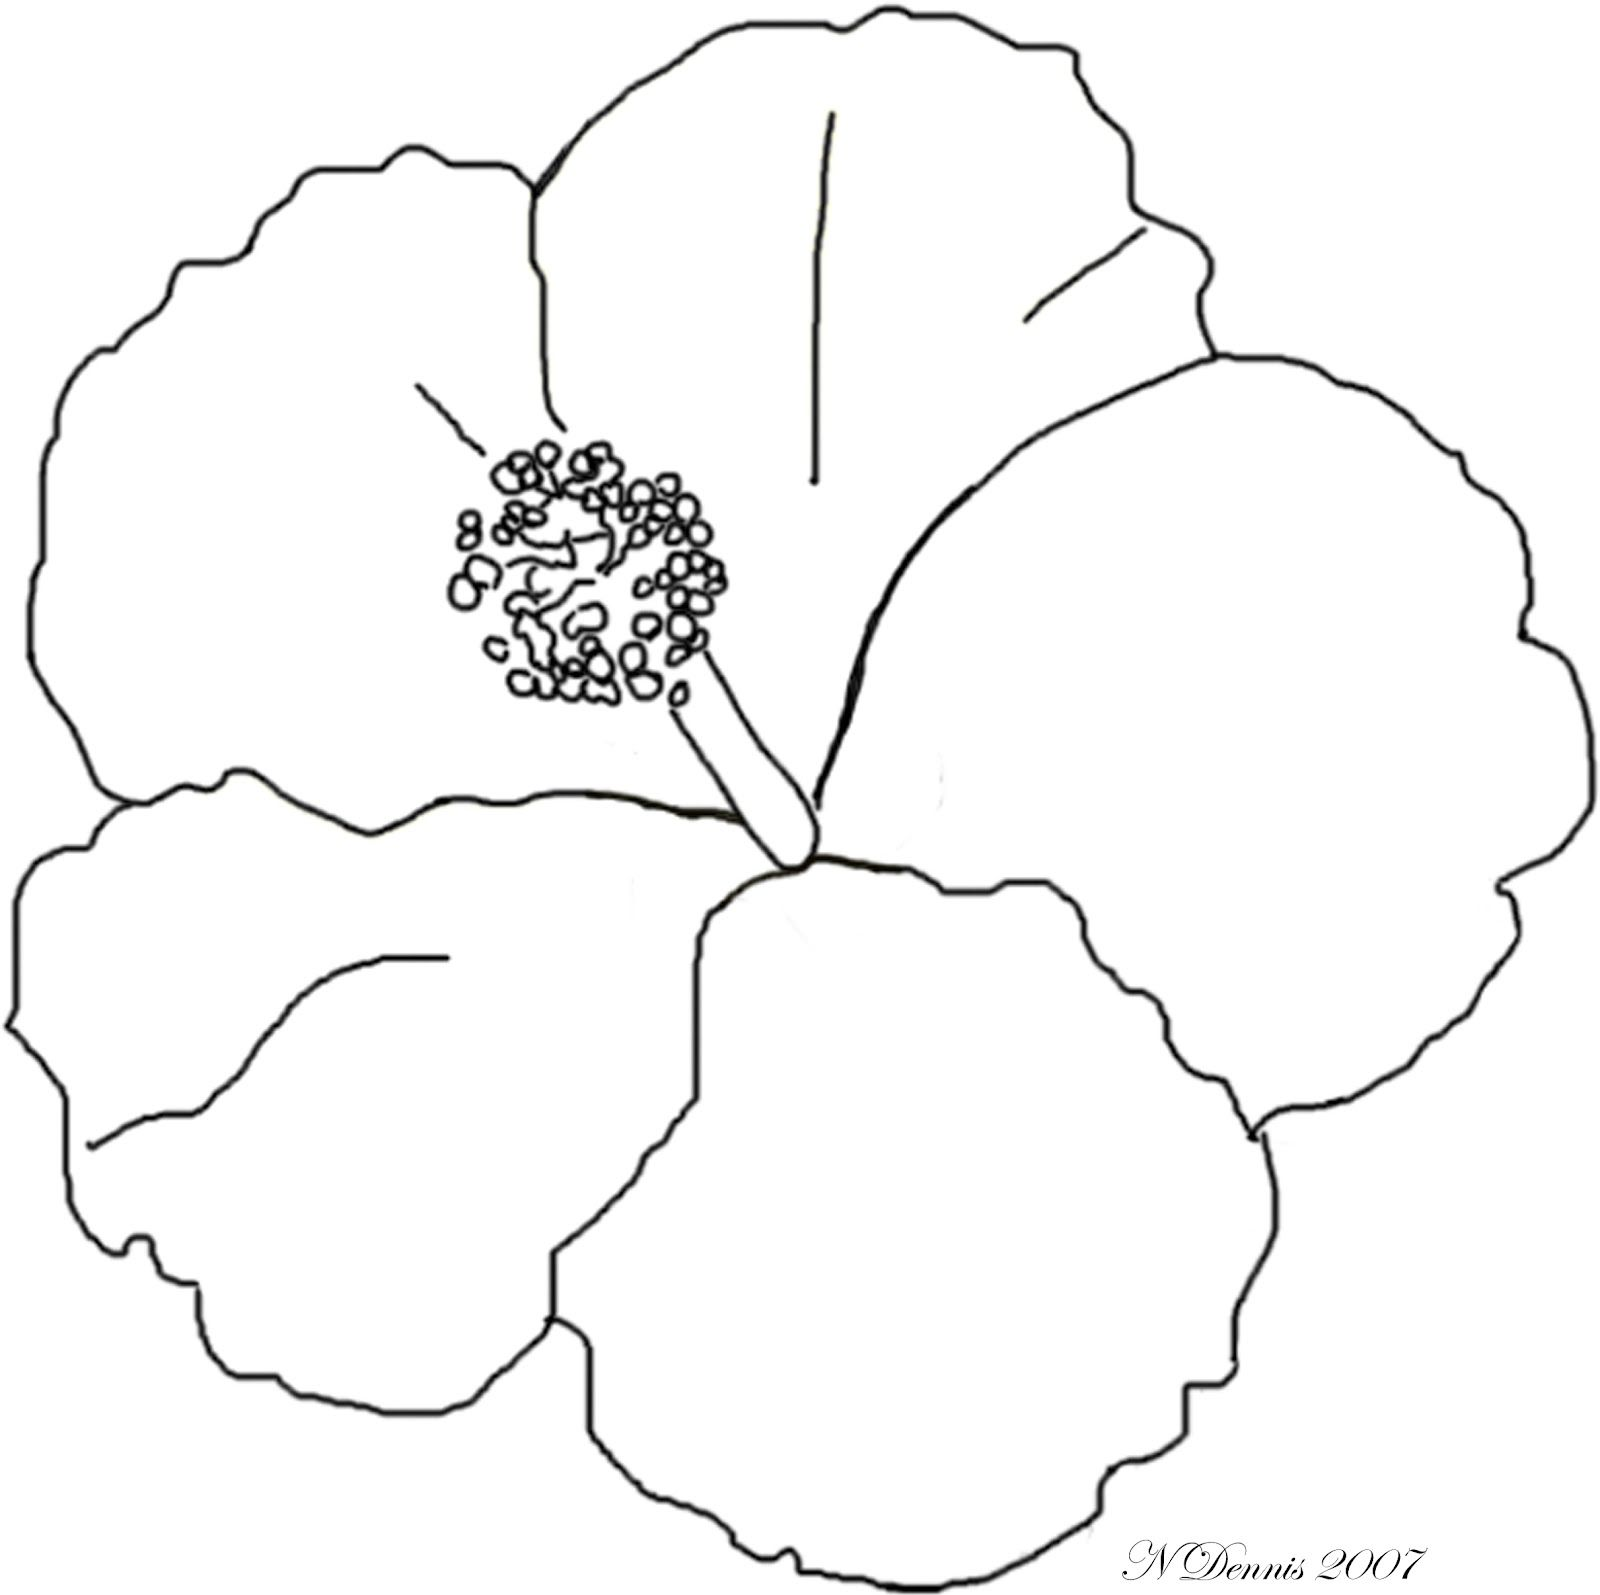 Adult coloring page for hibiscus flower coloring pages for all adult coloring page for hibiscus flower coloring pages for all ages izmirmasajfo